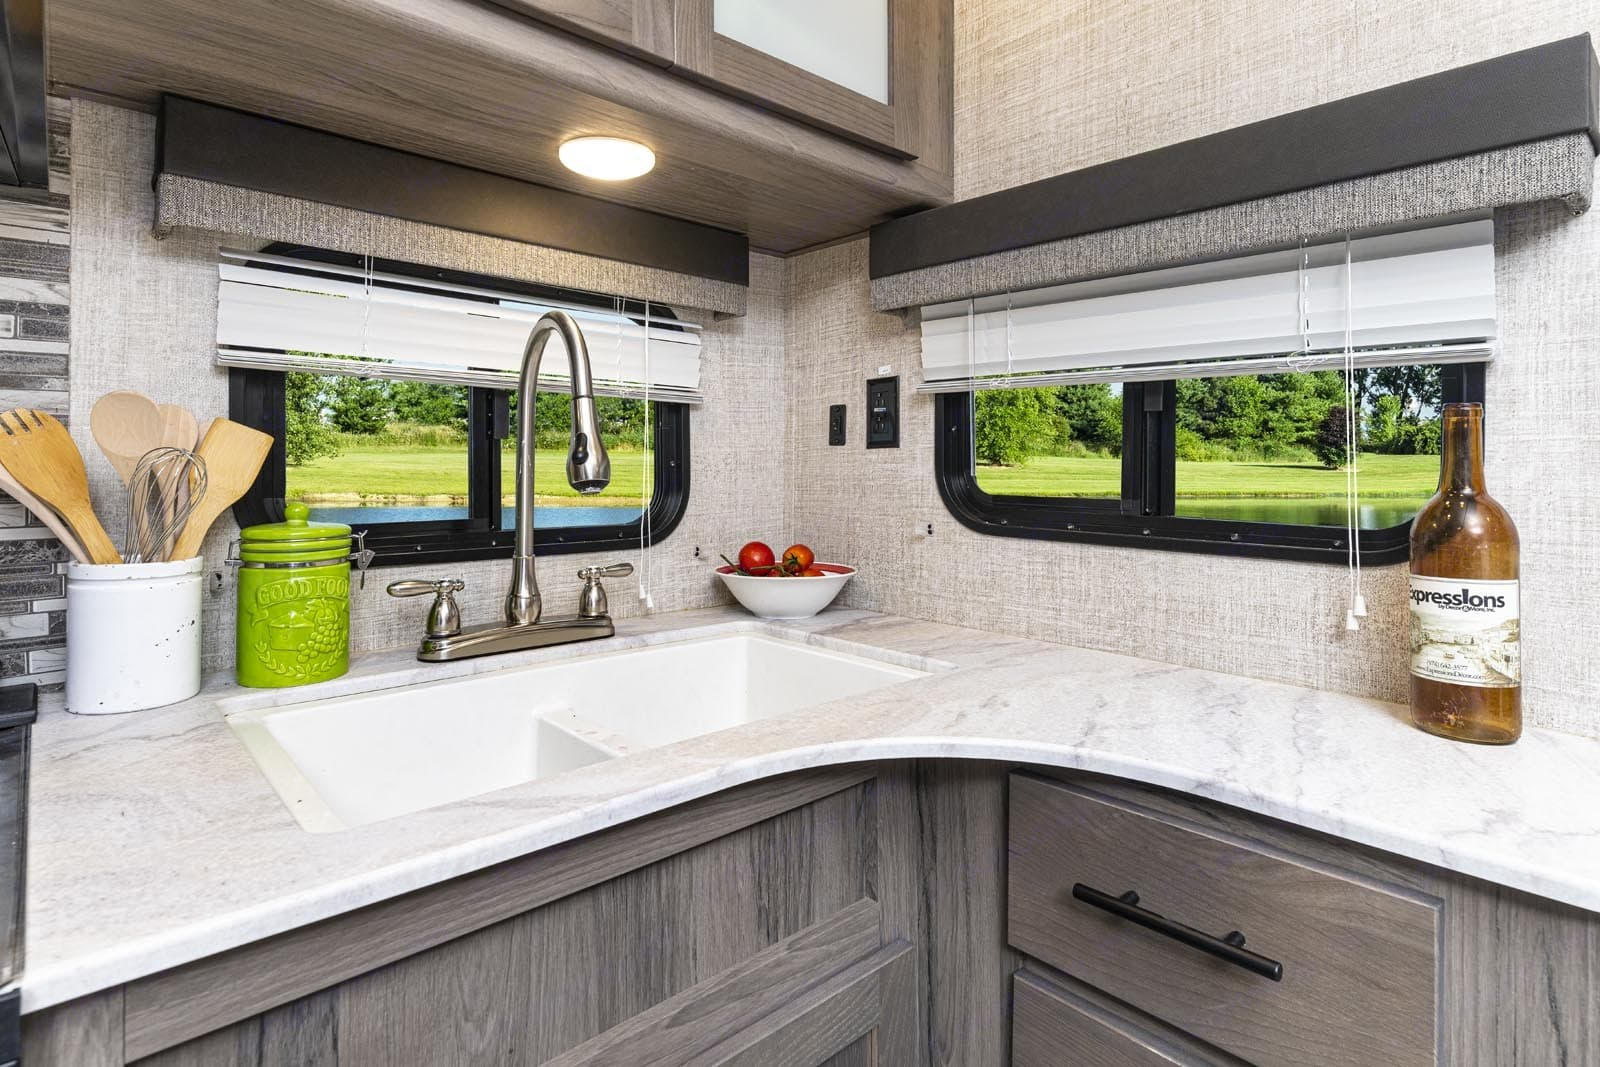 Plenty space to prep and cook your meals.. Gulf Stream Amerilite 2021